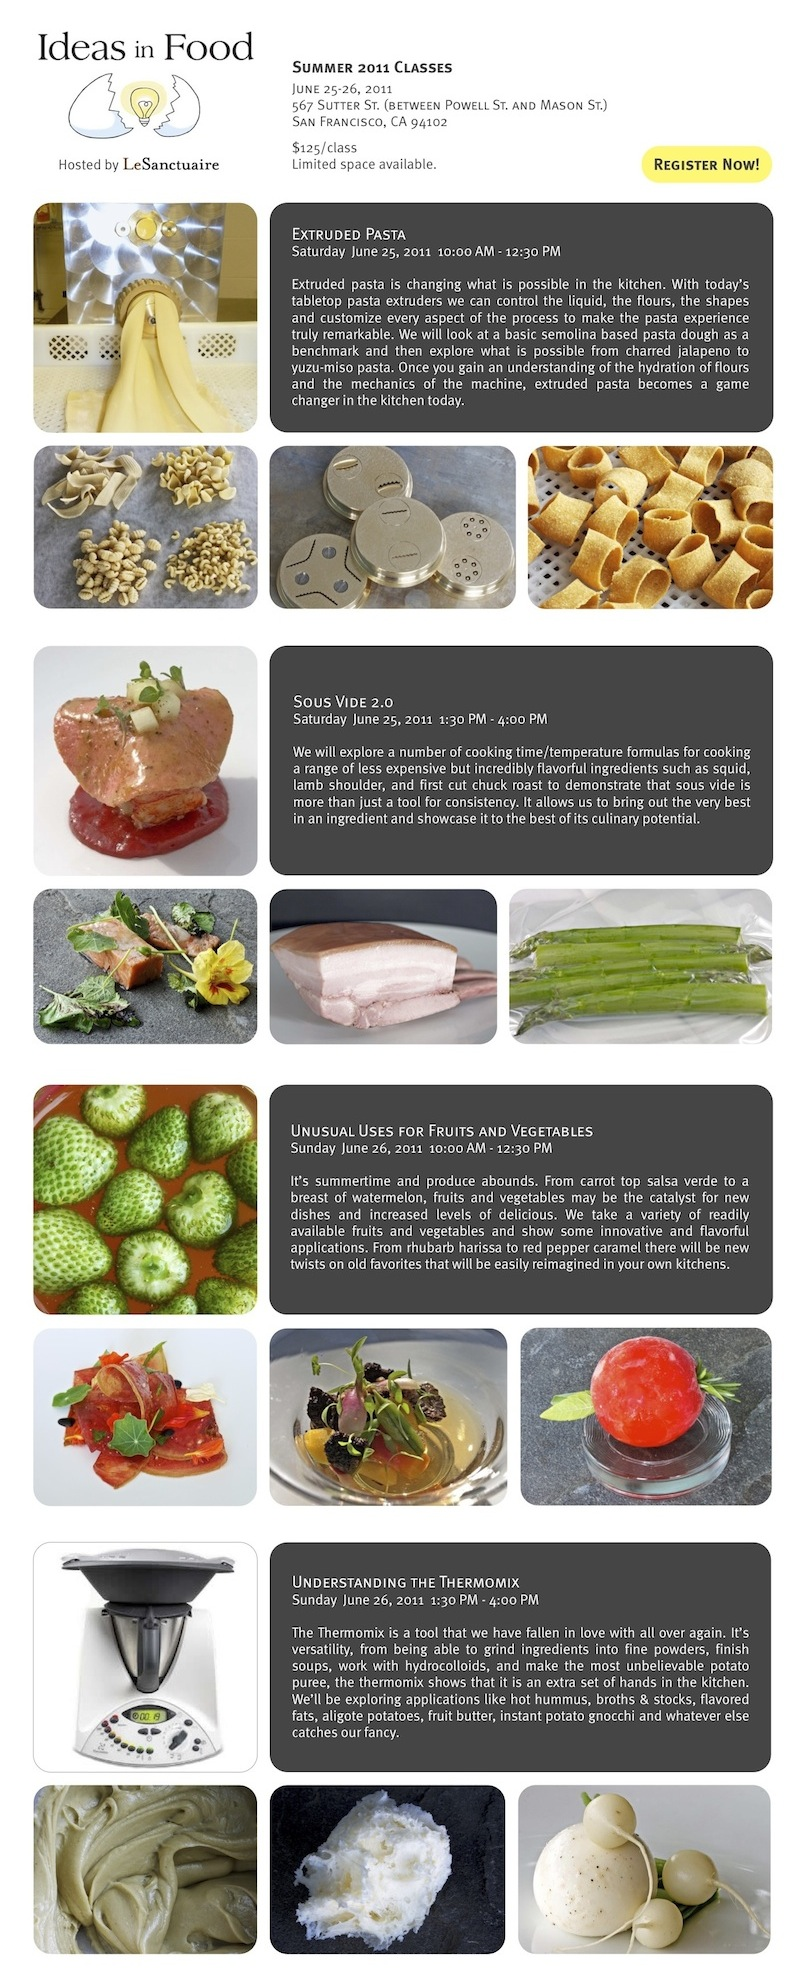 Ideas in Food Summer 2011 Classes at Le Sanctuaire. Register now! Limited space available.